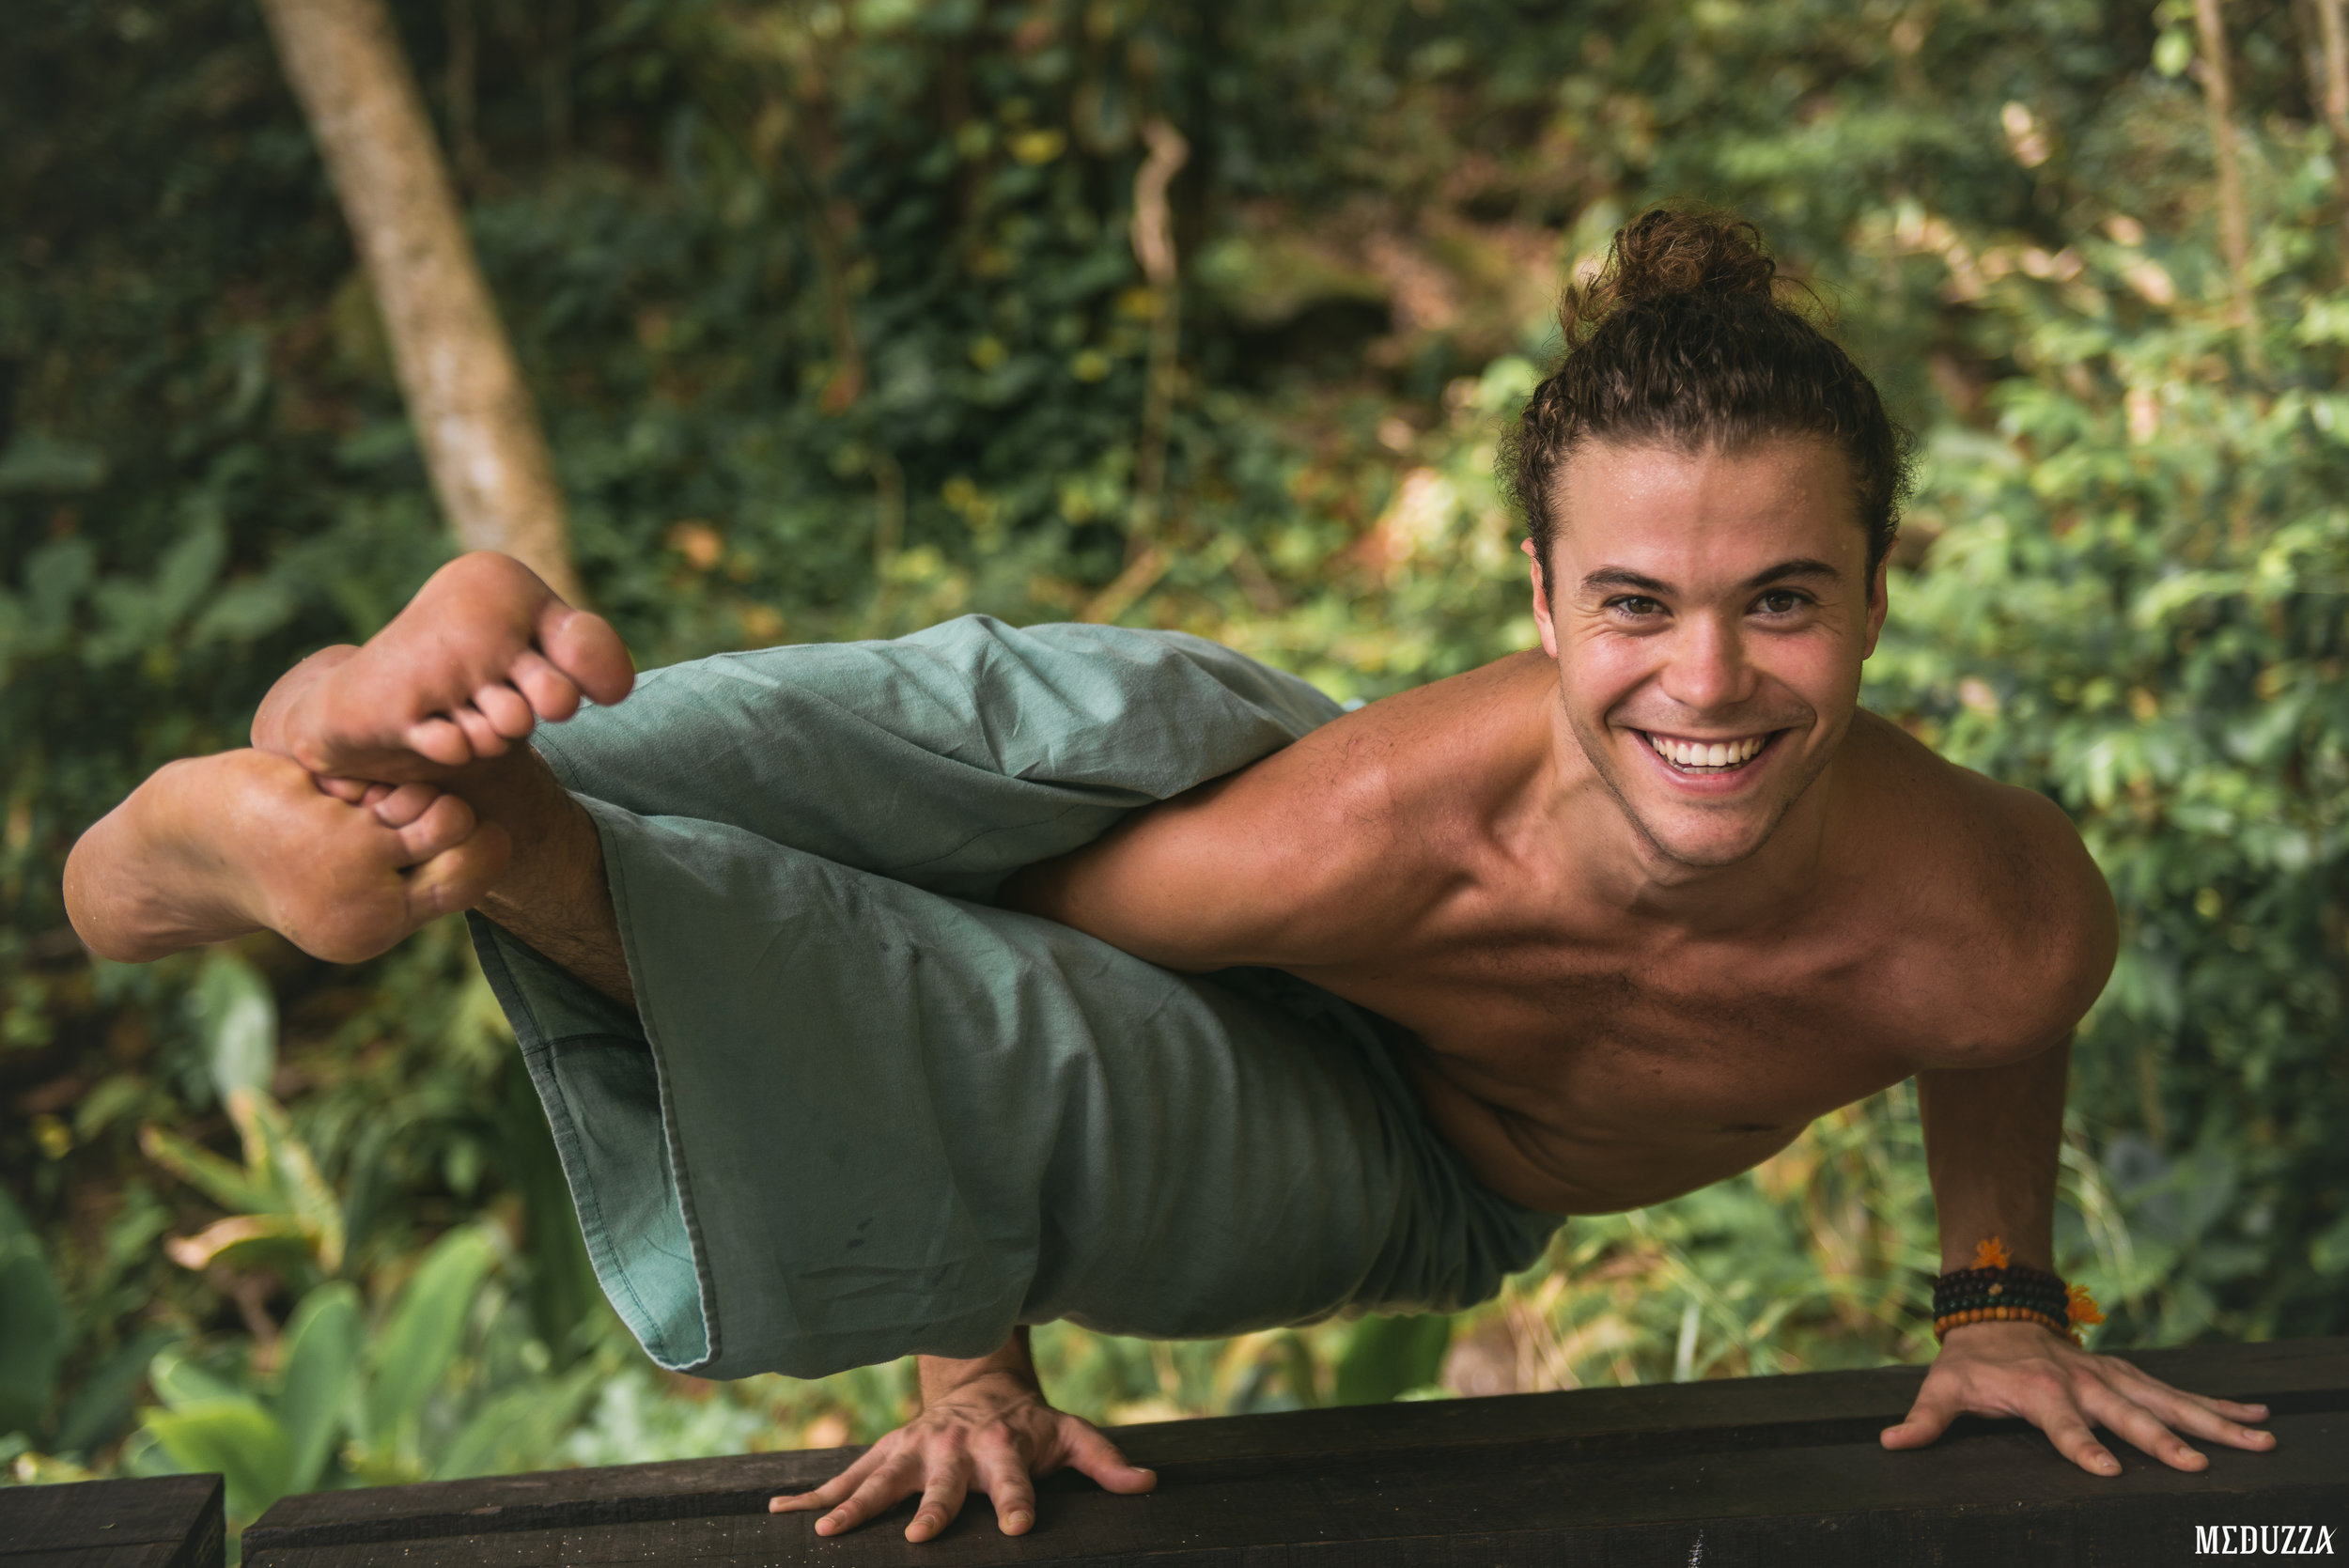 Meet Christian Coelho - To say we are excited to have Christian Coelho lead his first retreat in Europe or Africa is an understatement! Hailing from Rio de Janeiro where he owns the Casa 111 Yoga Studio, Christian's incredibly humble, genuine, and warm energy gained him a loyal following.Initially trained in Ashtanga & Rocket Vinyasa Yoga, Christian has found inspiration in the slower and more intuitive style of Forrest Yoga. Christian is also the founder of a Cuban salsa group, a massage therapist, and recently graduated with a Masters degree in Yoga History & Philosophy.